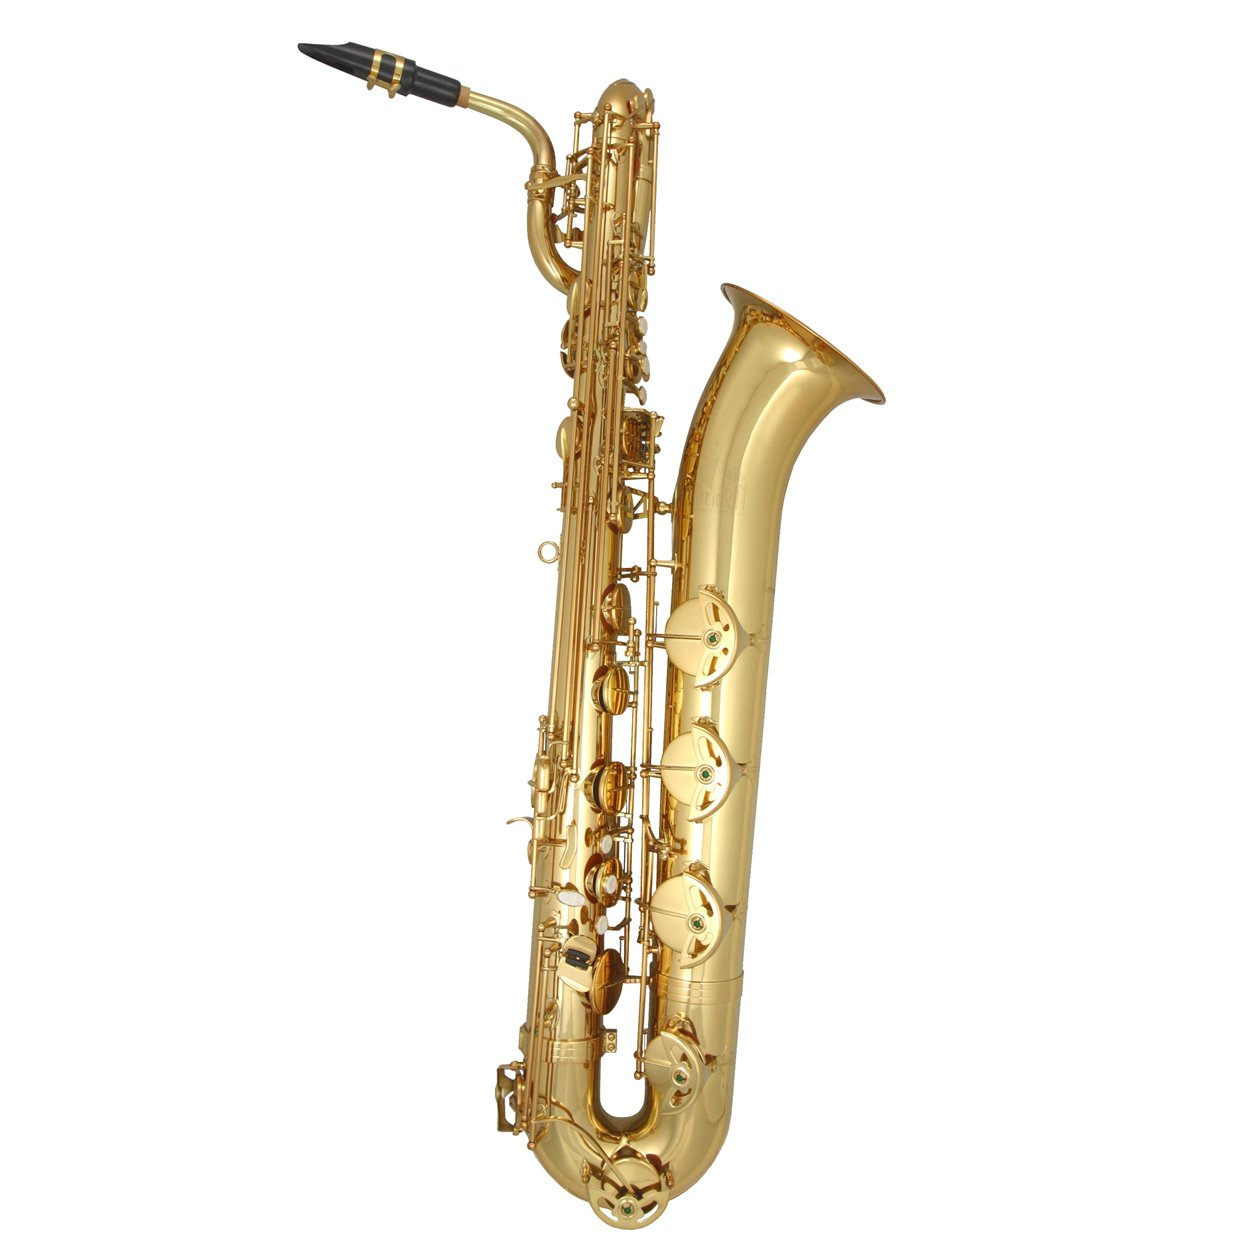 Trevor James - SR Baritone Saxophones-Saxophone-Trevor James-Gold Lacquer-Music Elements